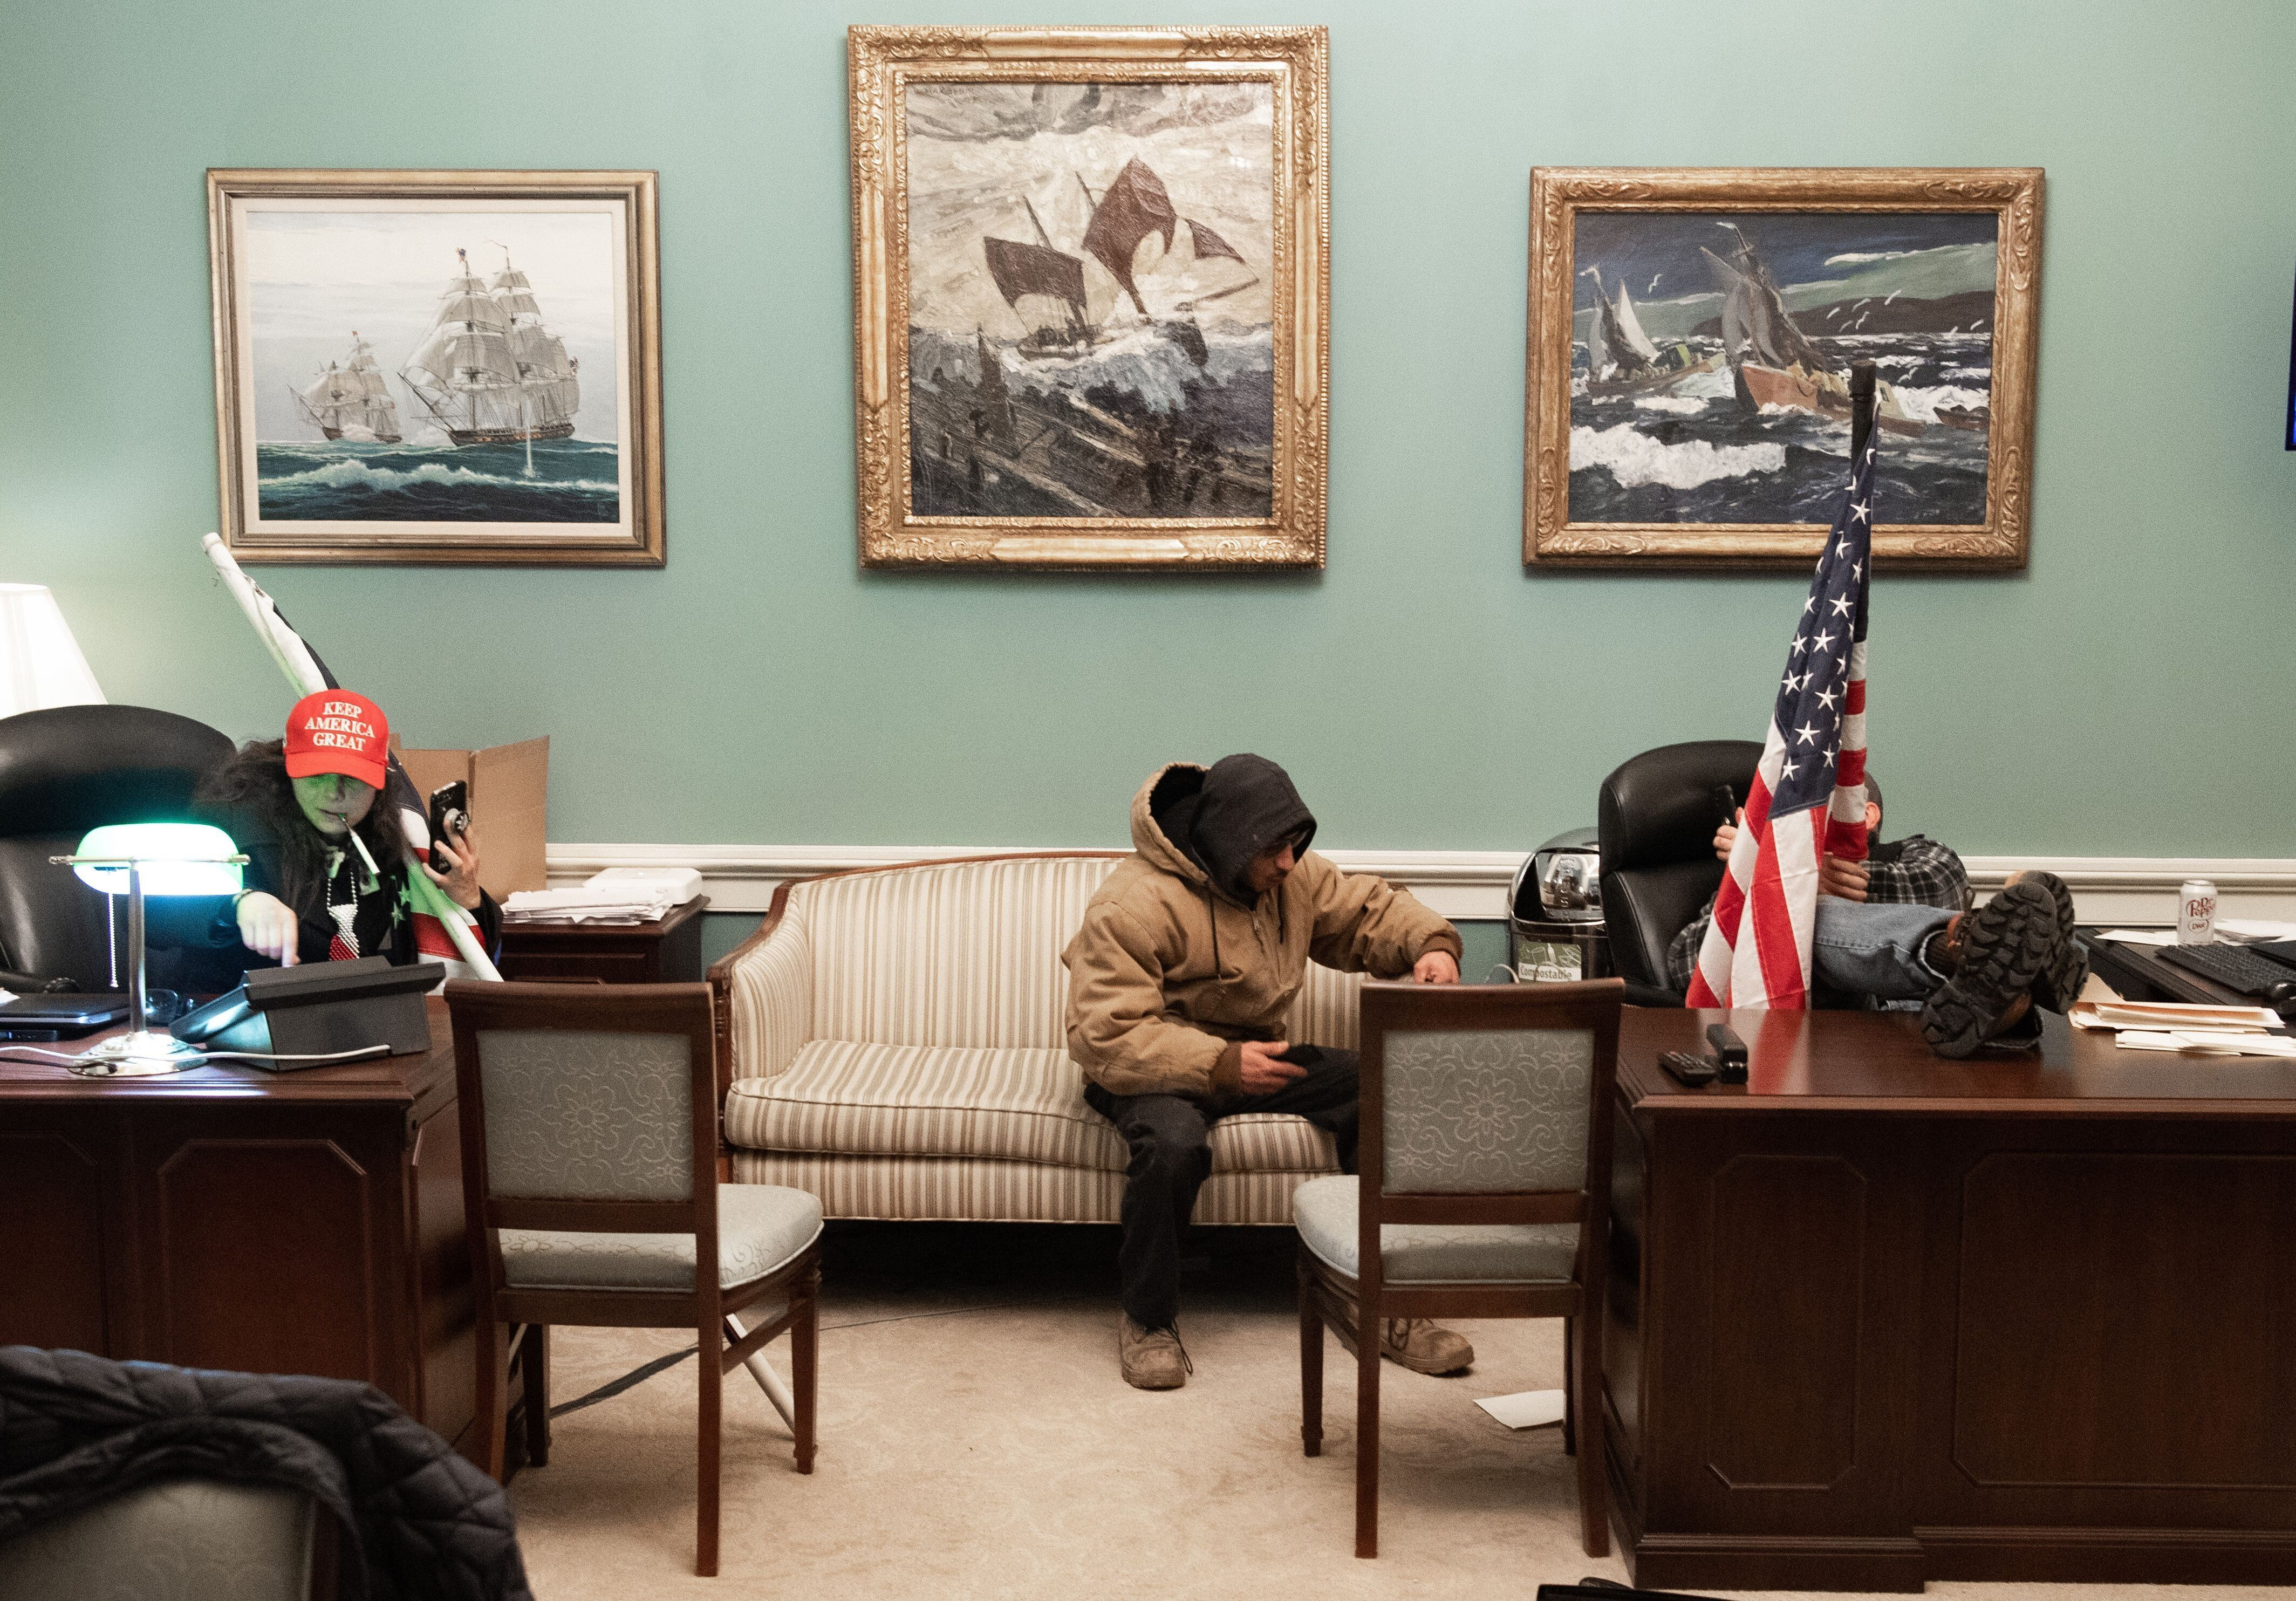 Intruders holding American flags invade Pelosi's office suite in the U.S. Capitol.